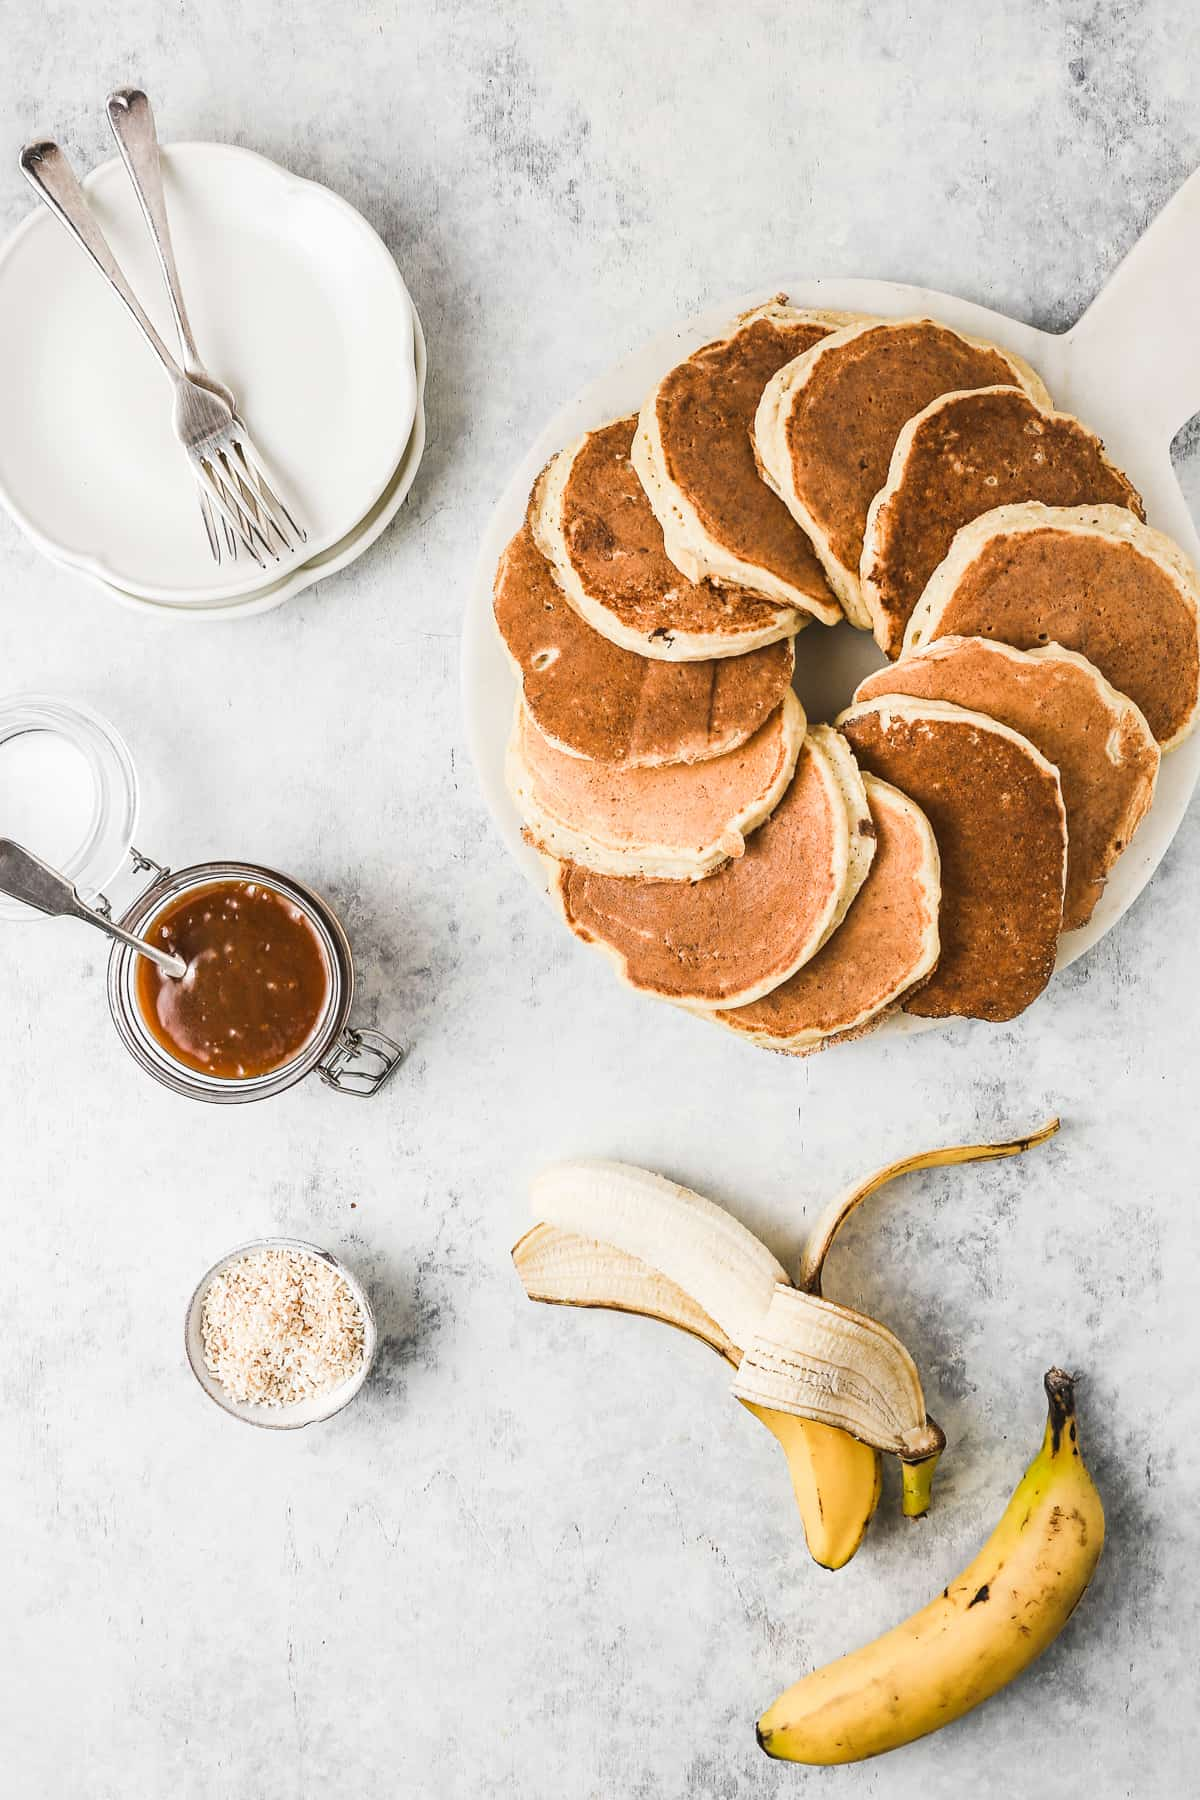 Serving platter of fluffy pancakes with sliced bananas and caramel sauce.